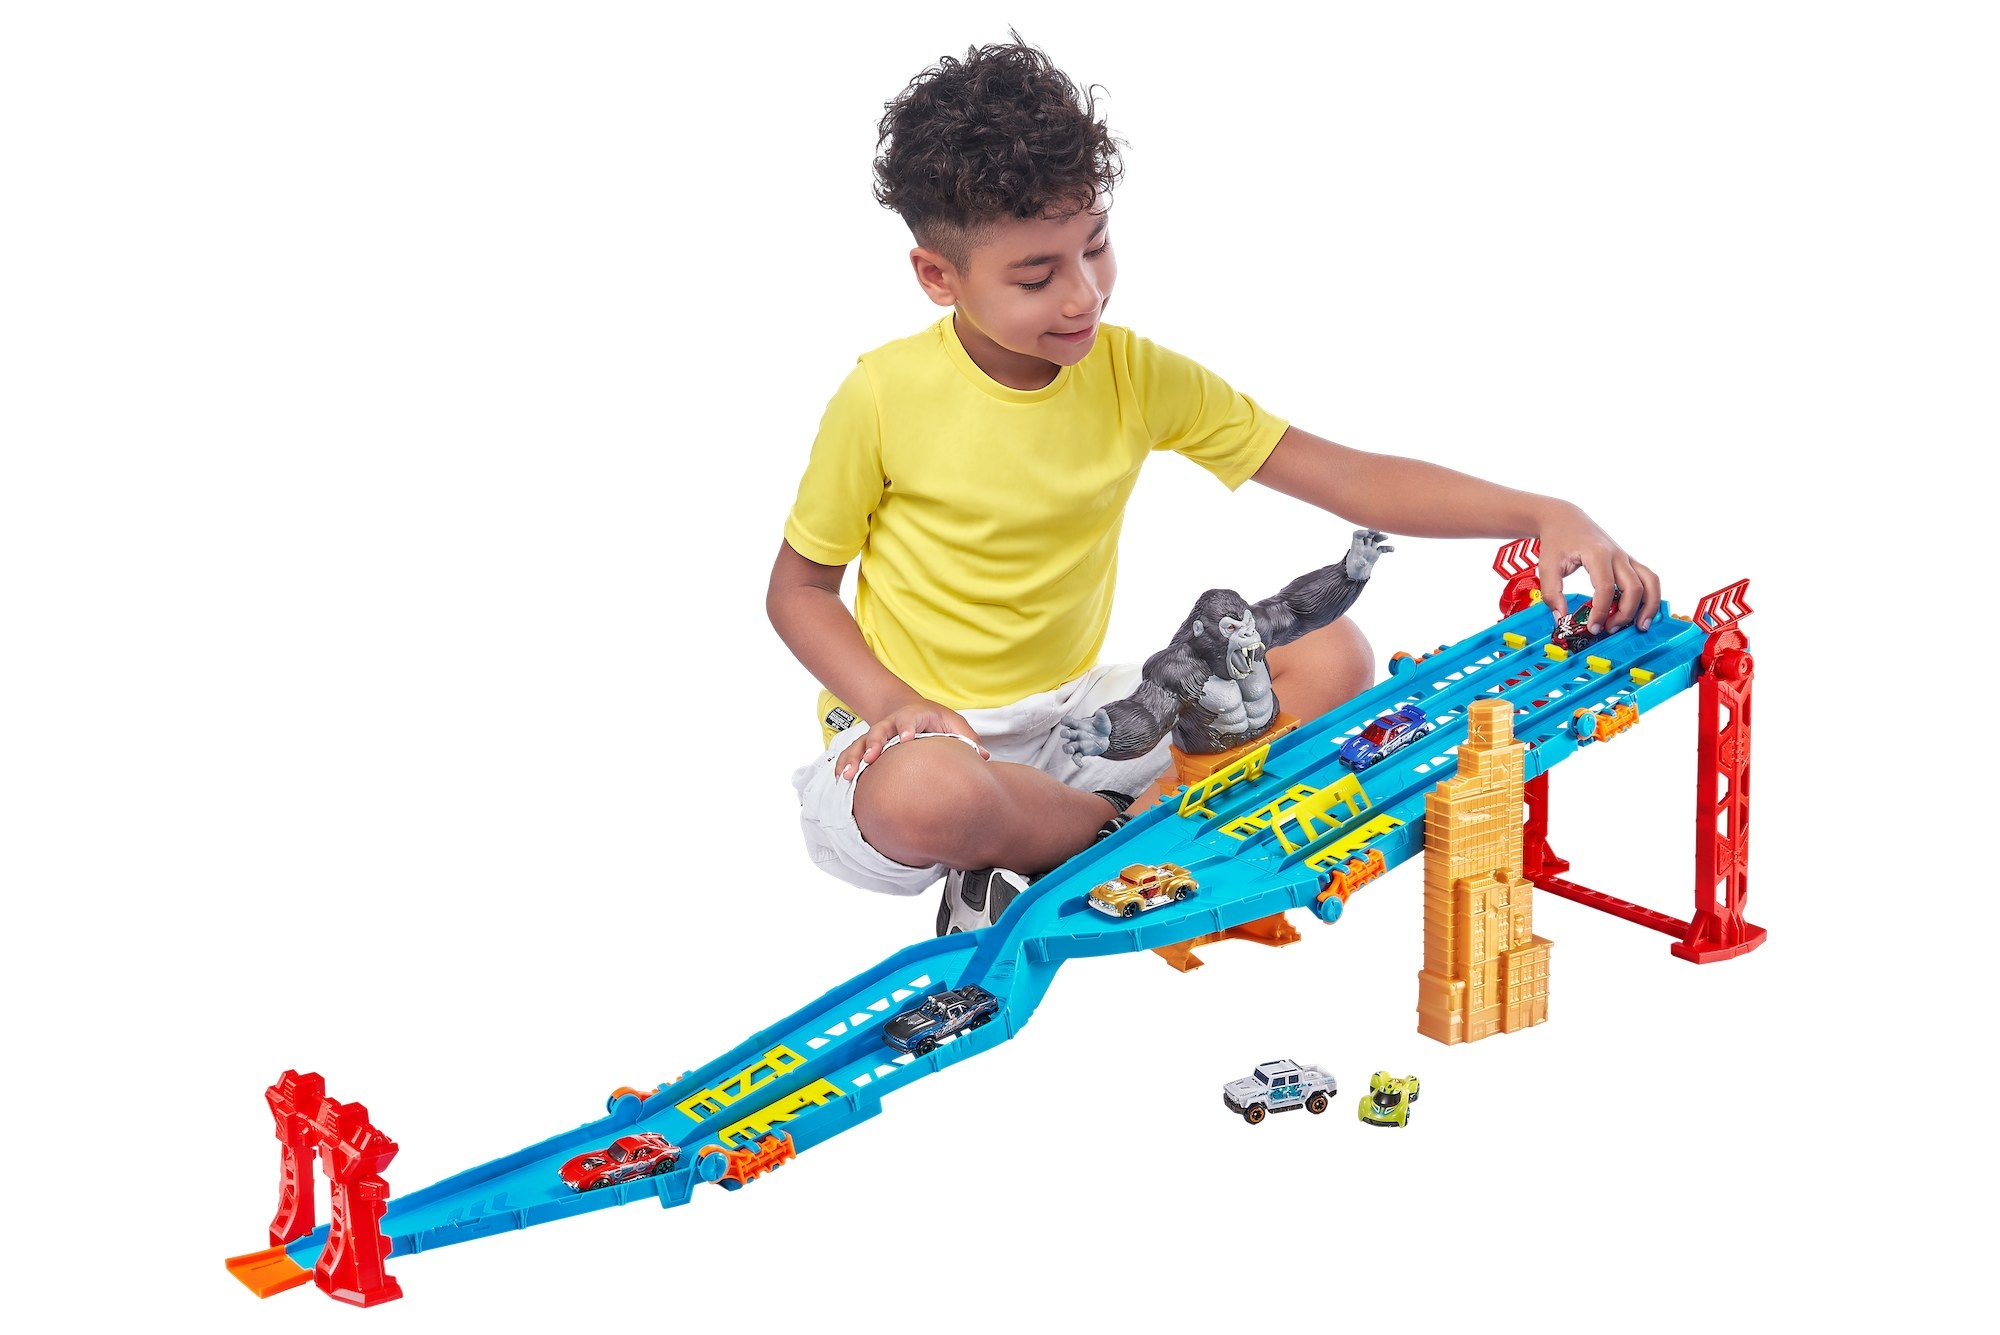 kid playing with a car racing track